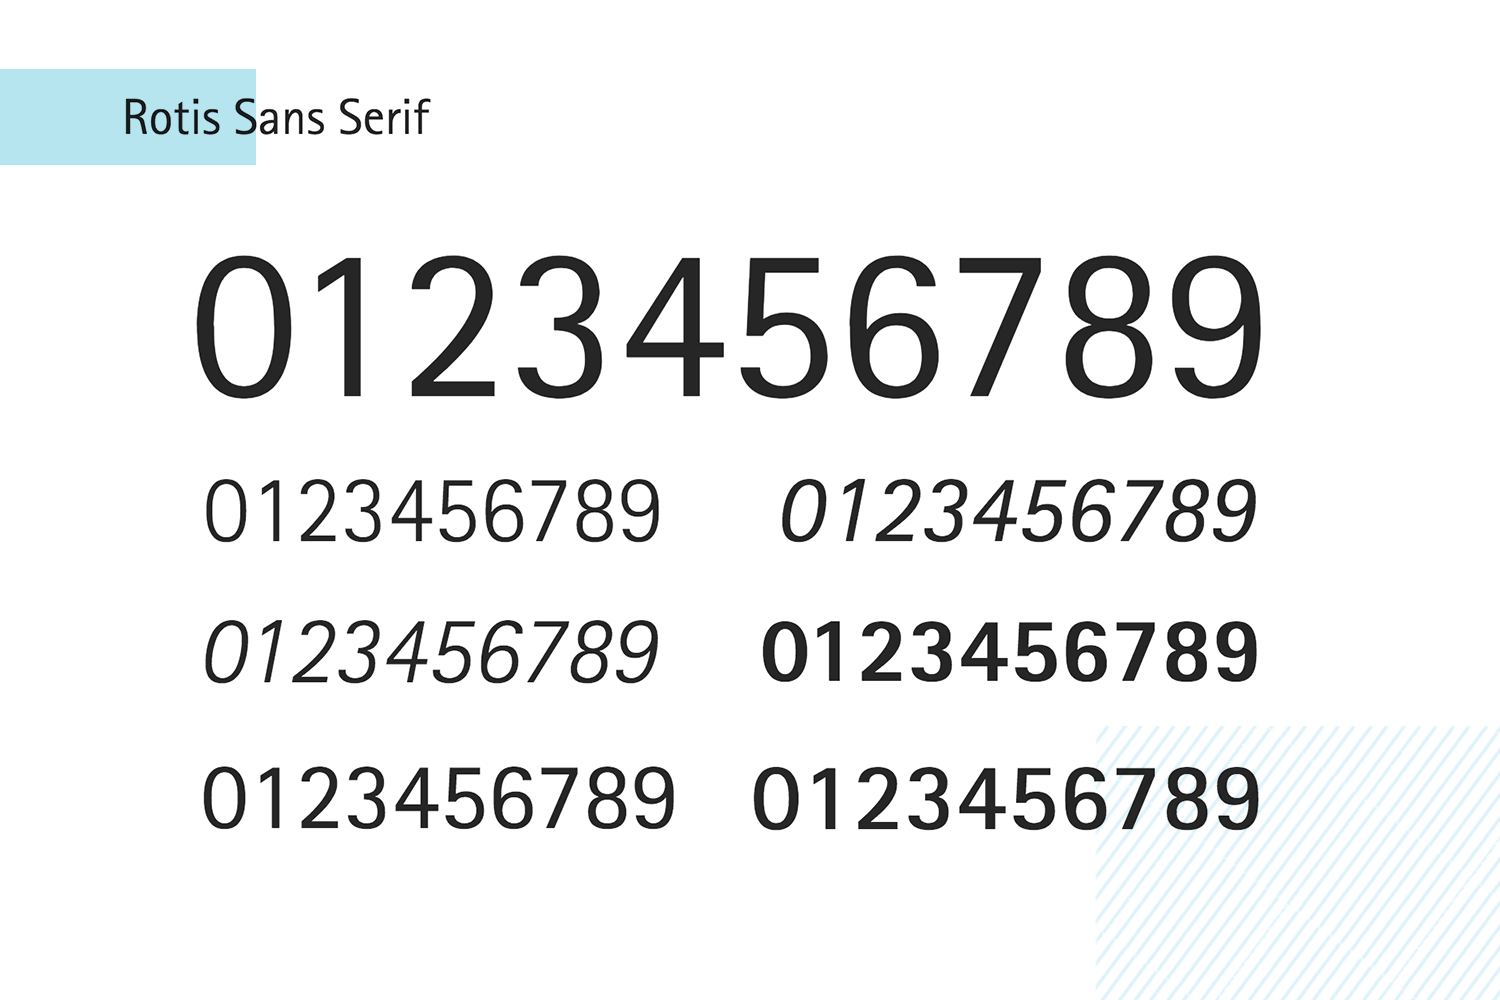 rotis sans serif as paid number font